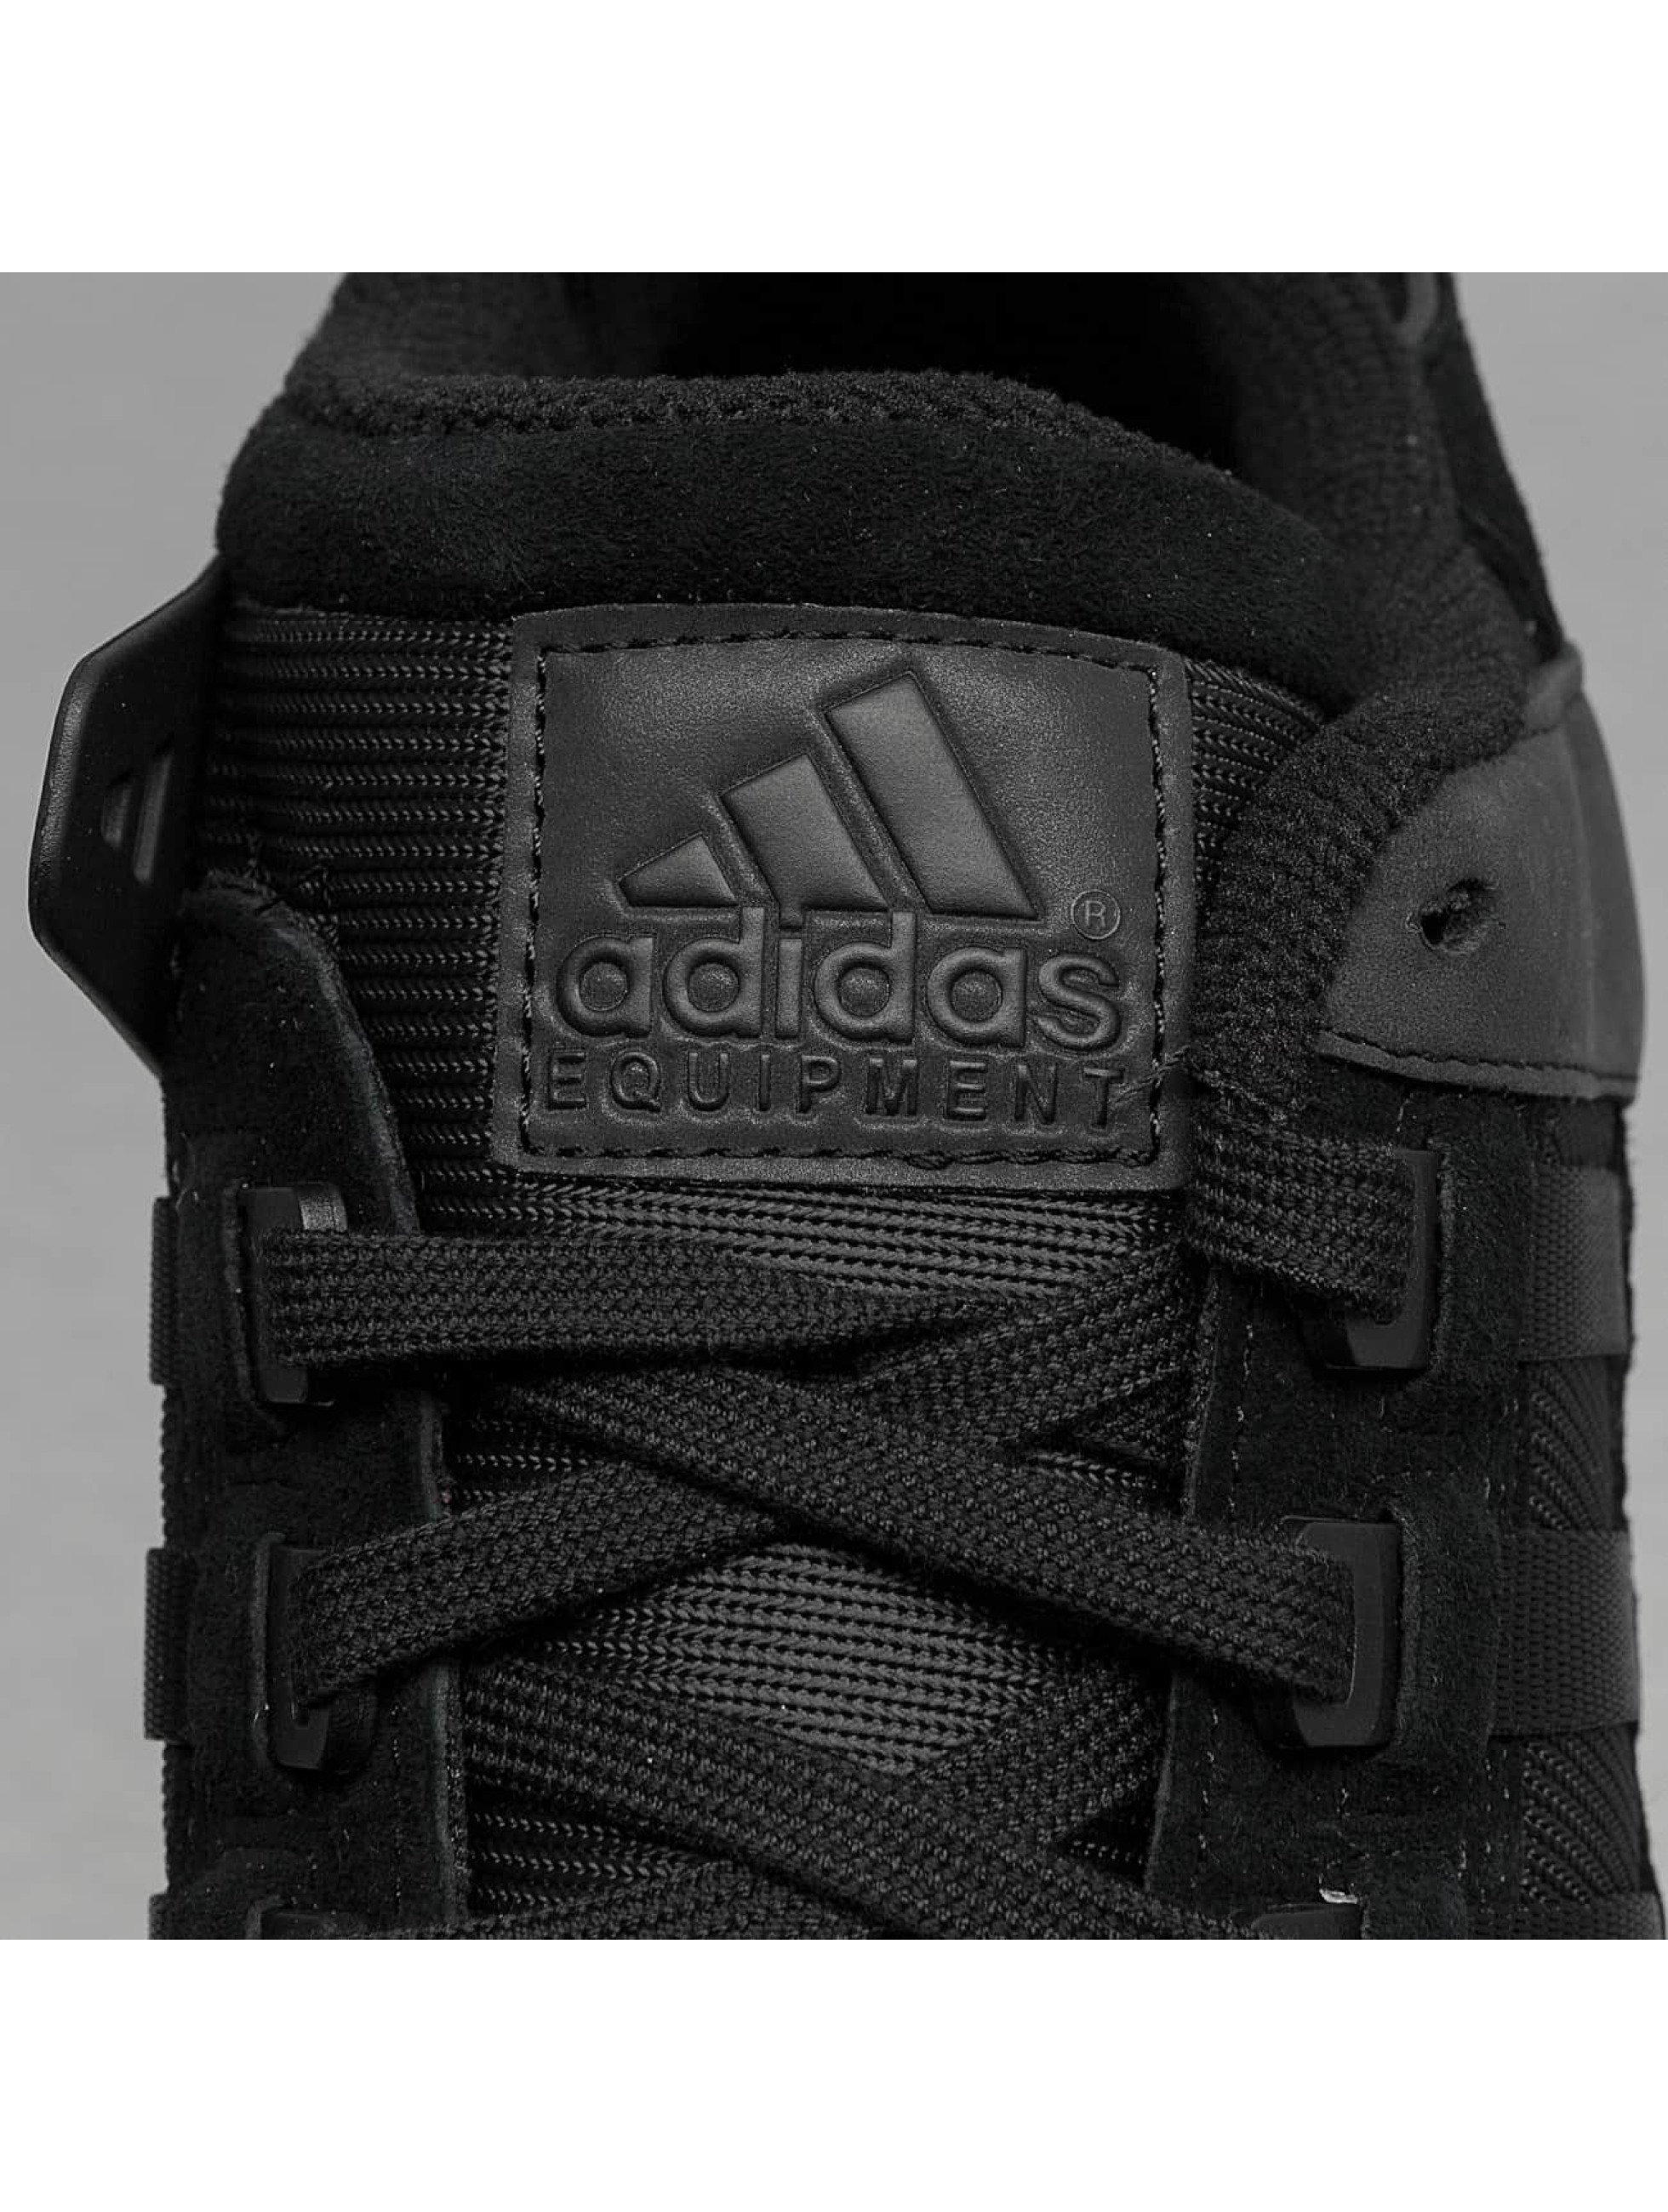 adidas Baskets Equipment noir